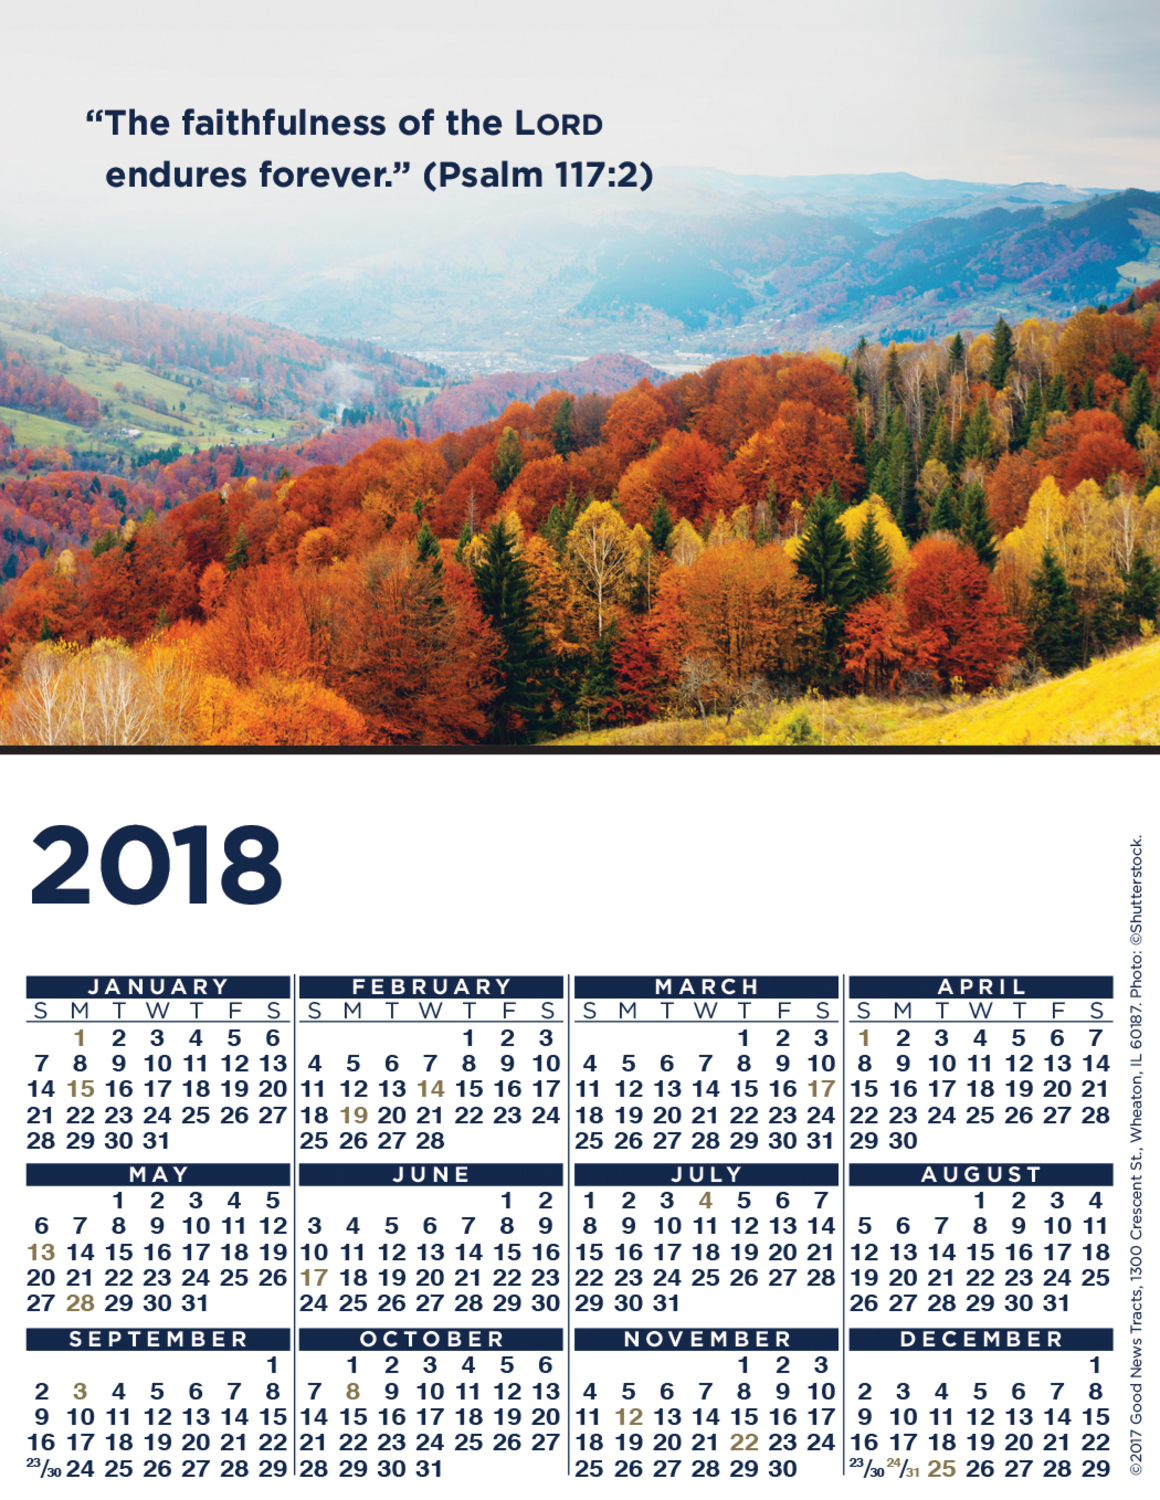 2018 Blank Calendar Card (Picture)